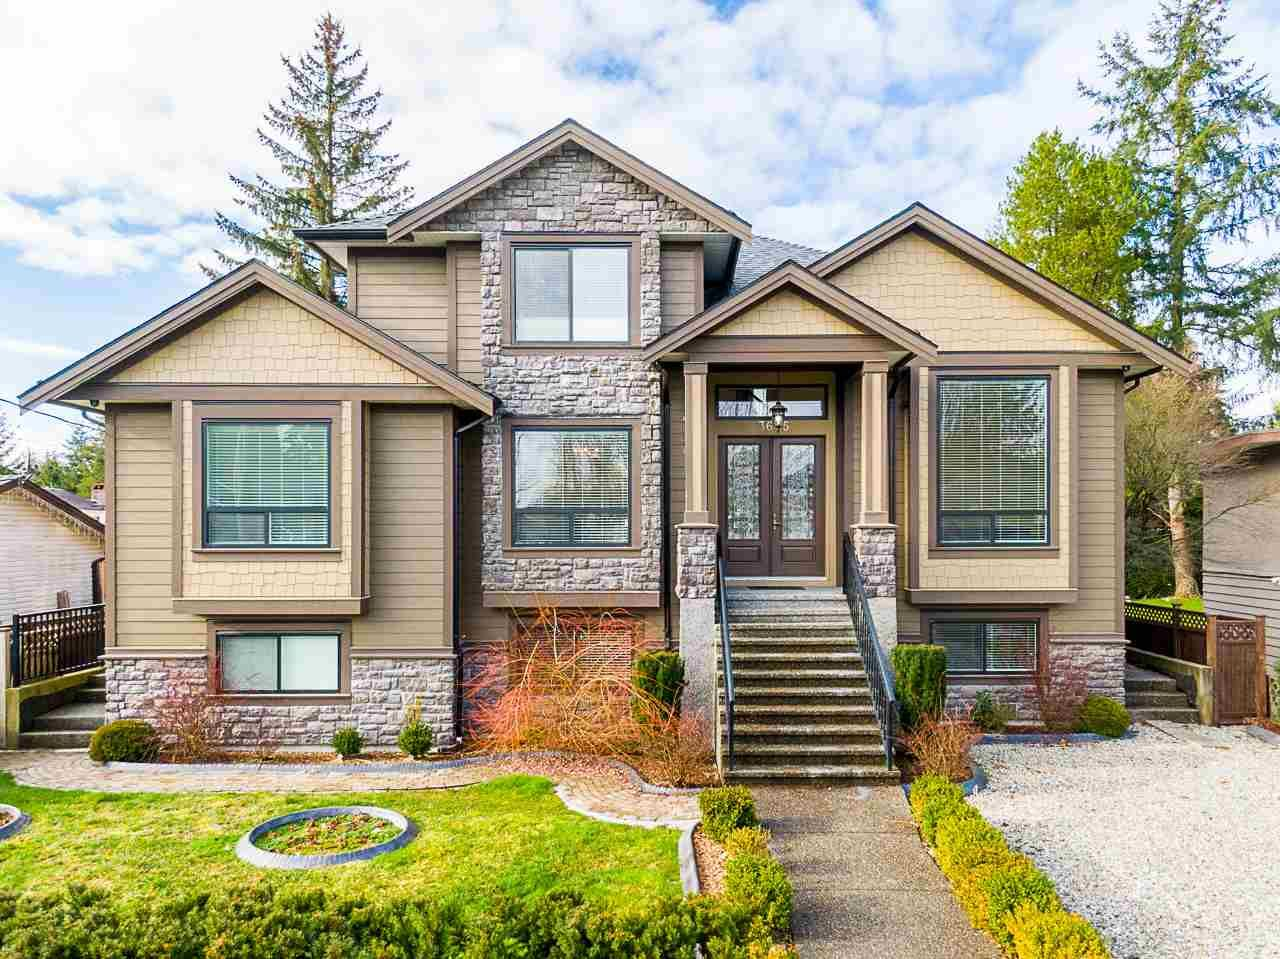 Main Photo: 3675 INVERNESS Street in Port Coquitlam: Lincoln Park PQ House for sale : MLS®# R2533159